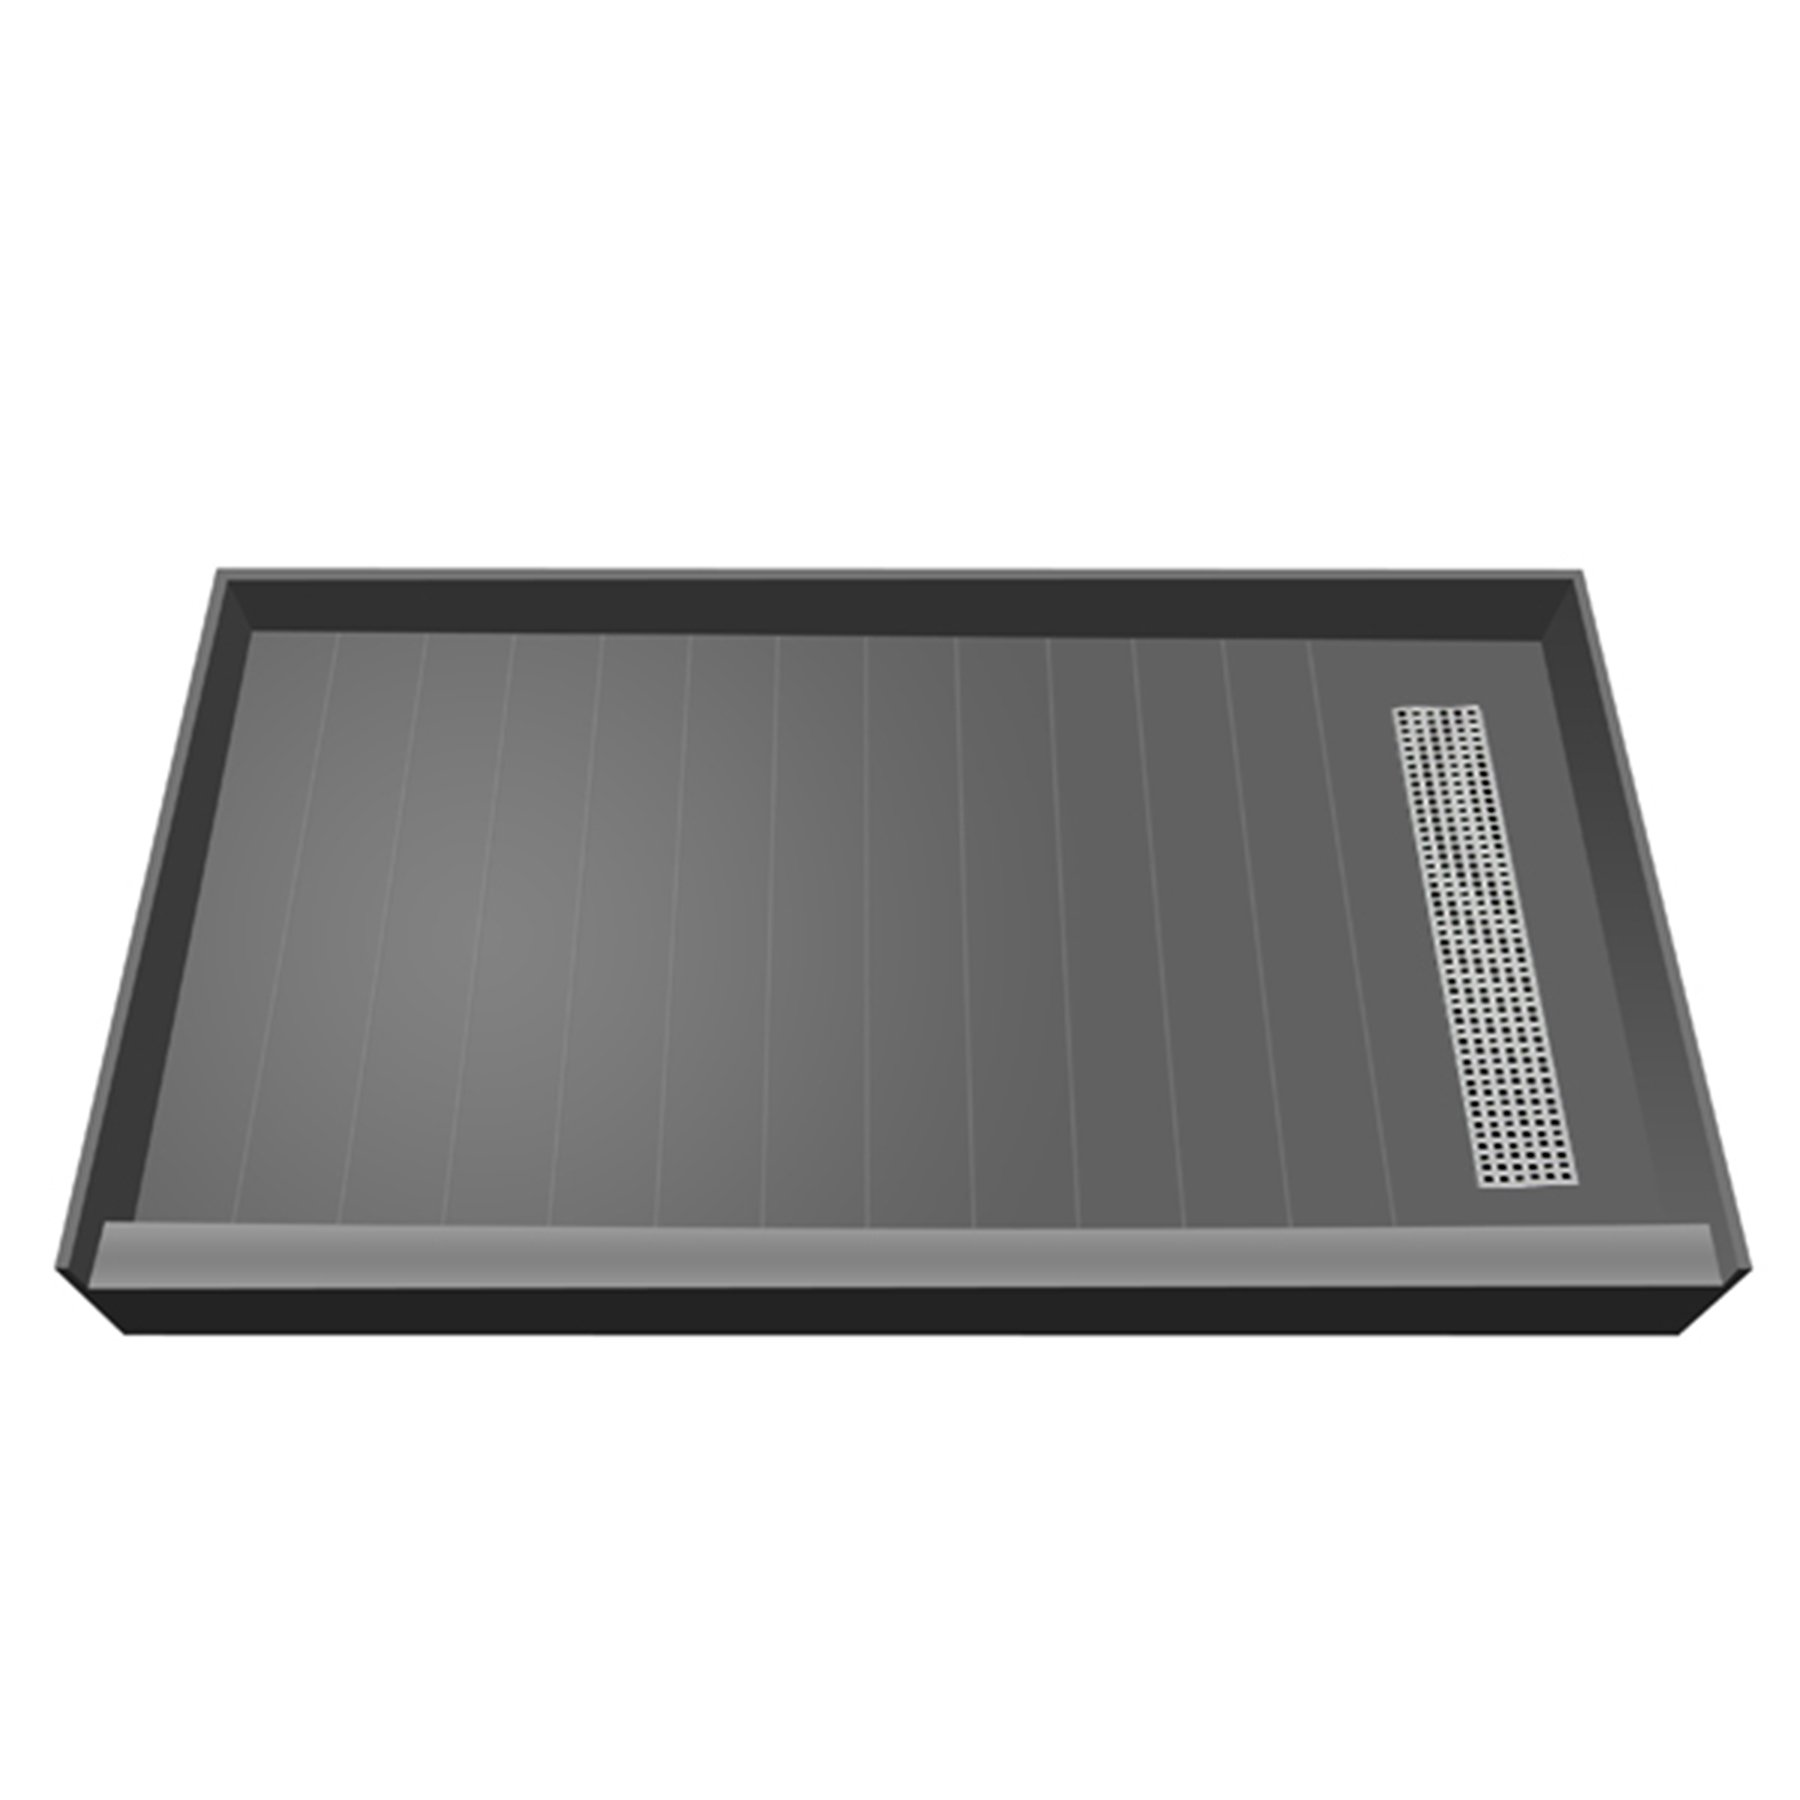 Tile Redi USA RT3660R-PVC-SQBN Redi Trench Shower Pan with Right Designer Brushed Nickel Trench, 36'' D x 60'' W